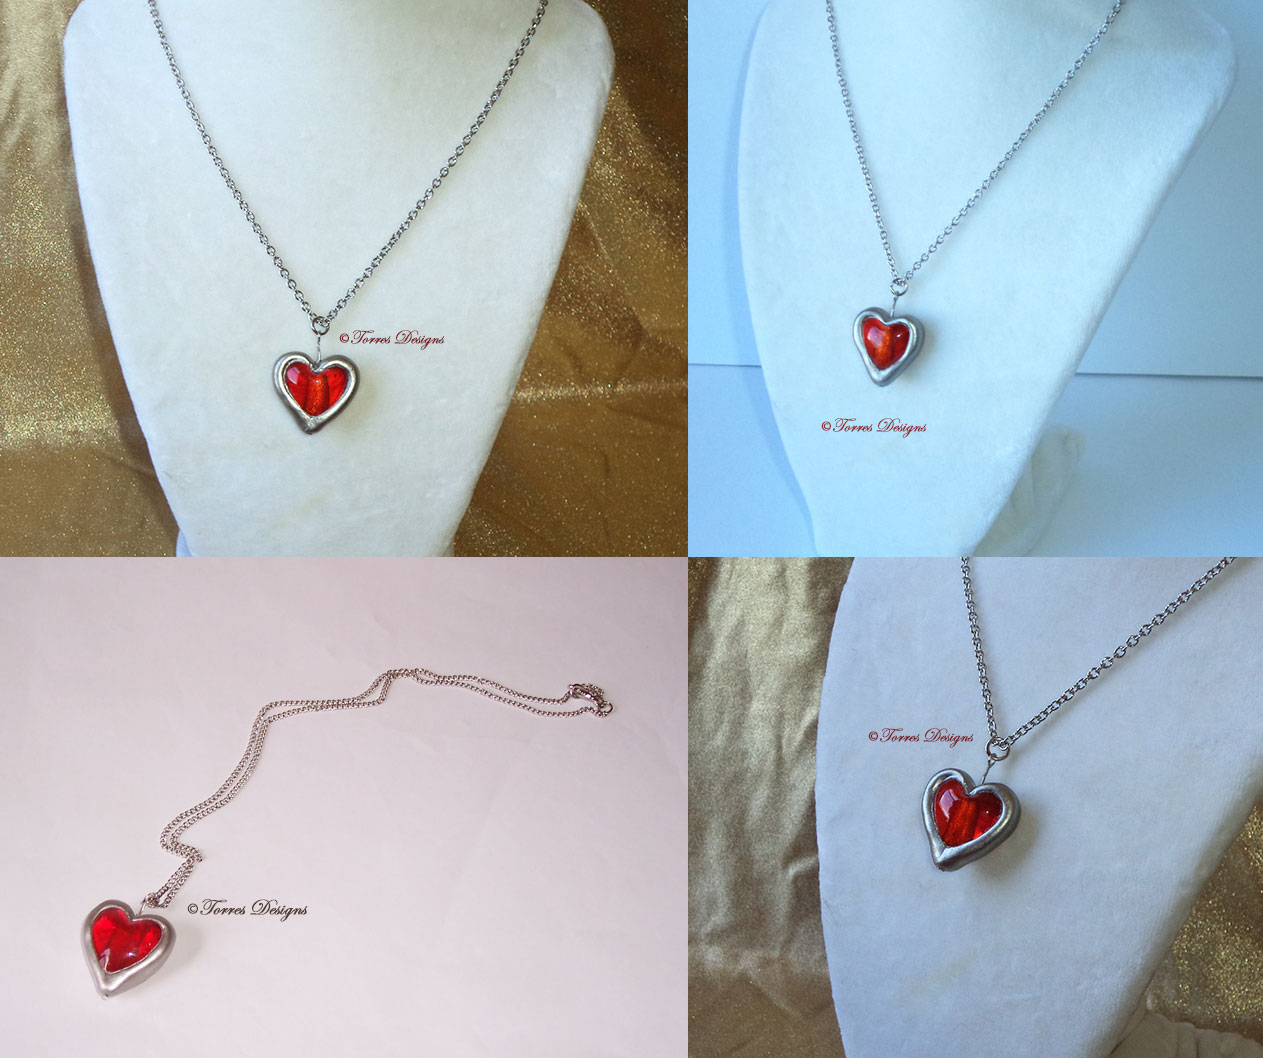 Heart Container Pendant Necklaces – Legend of Zelda OoT